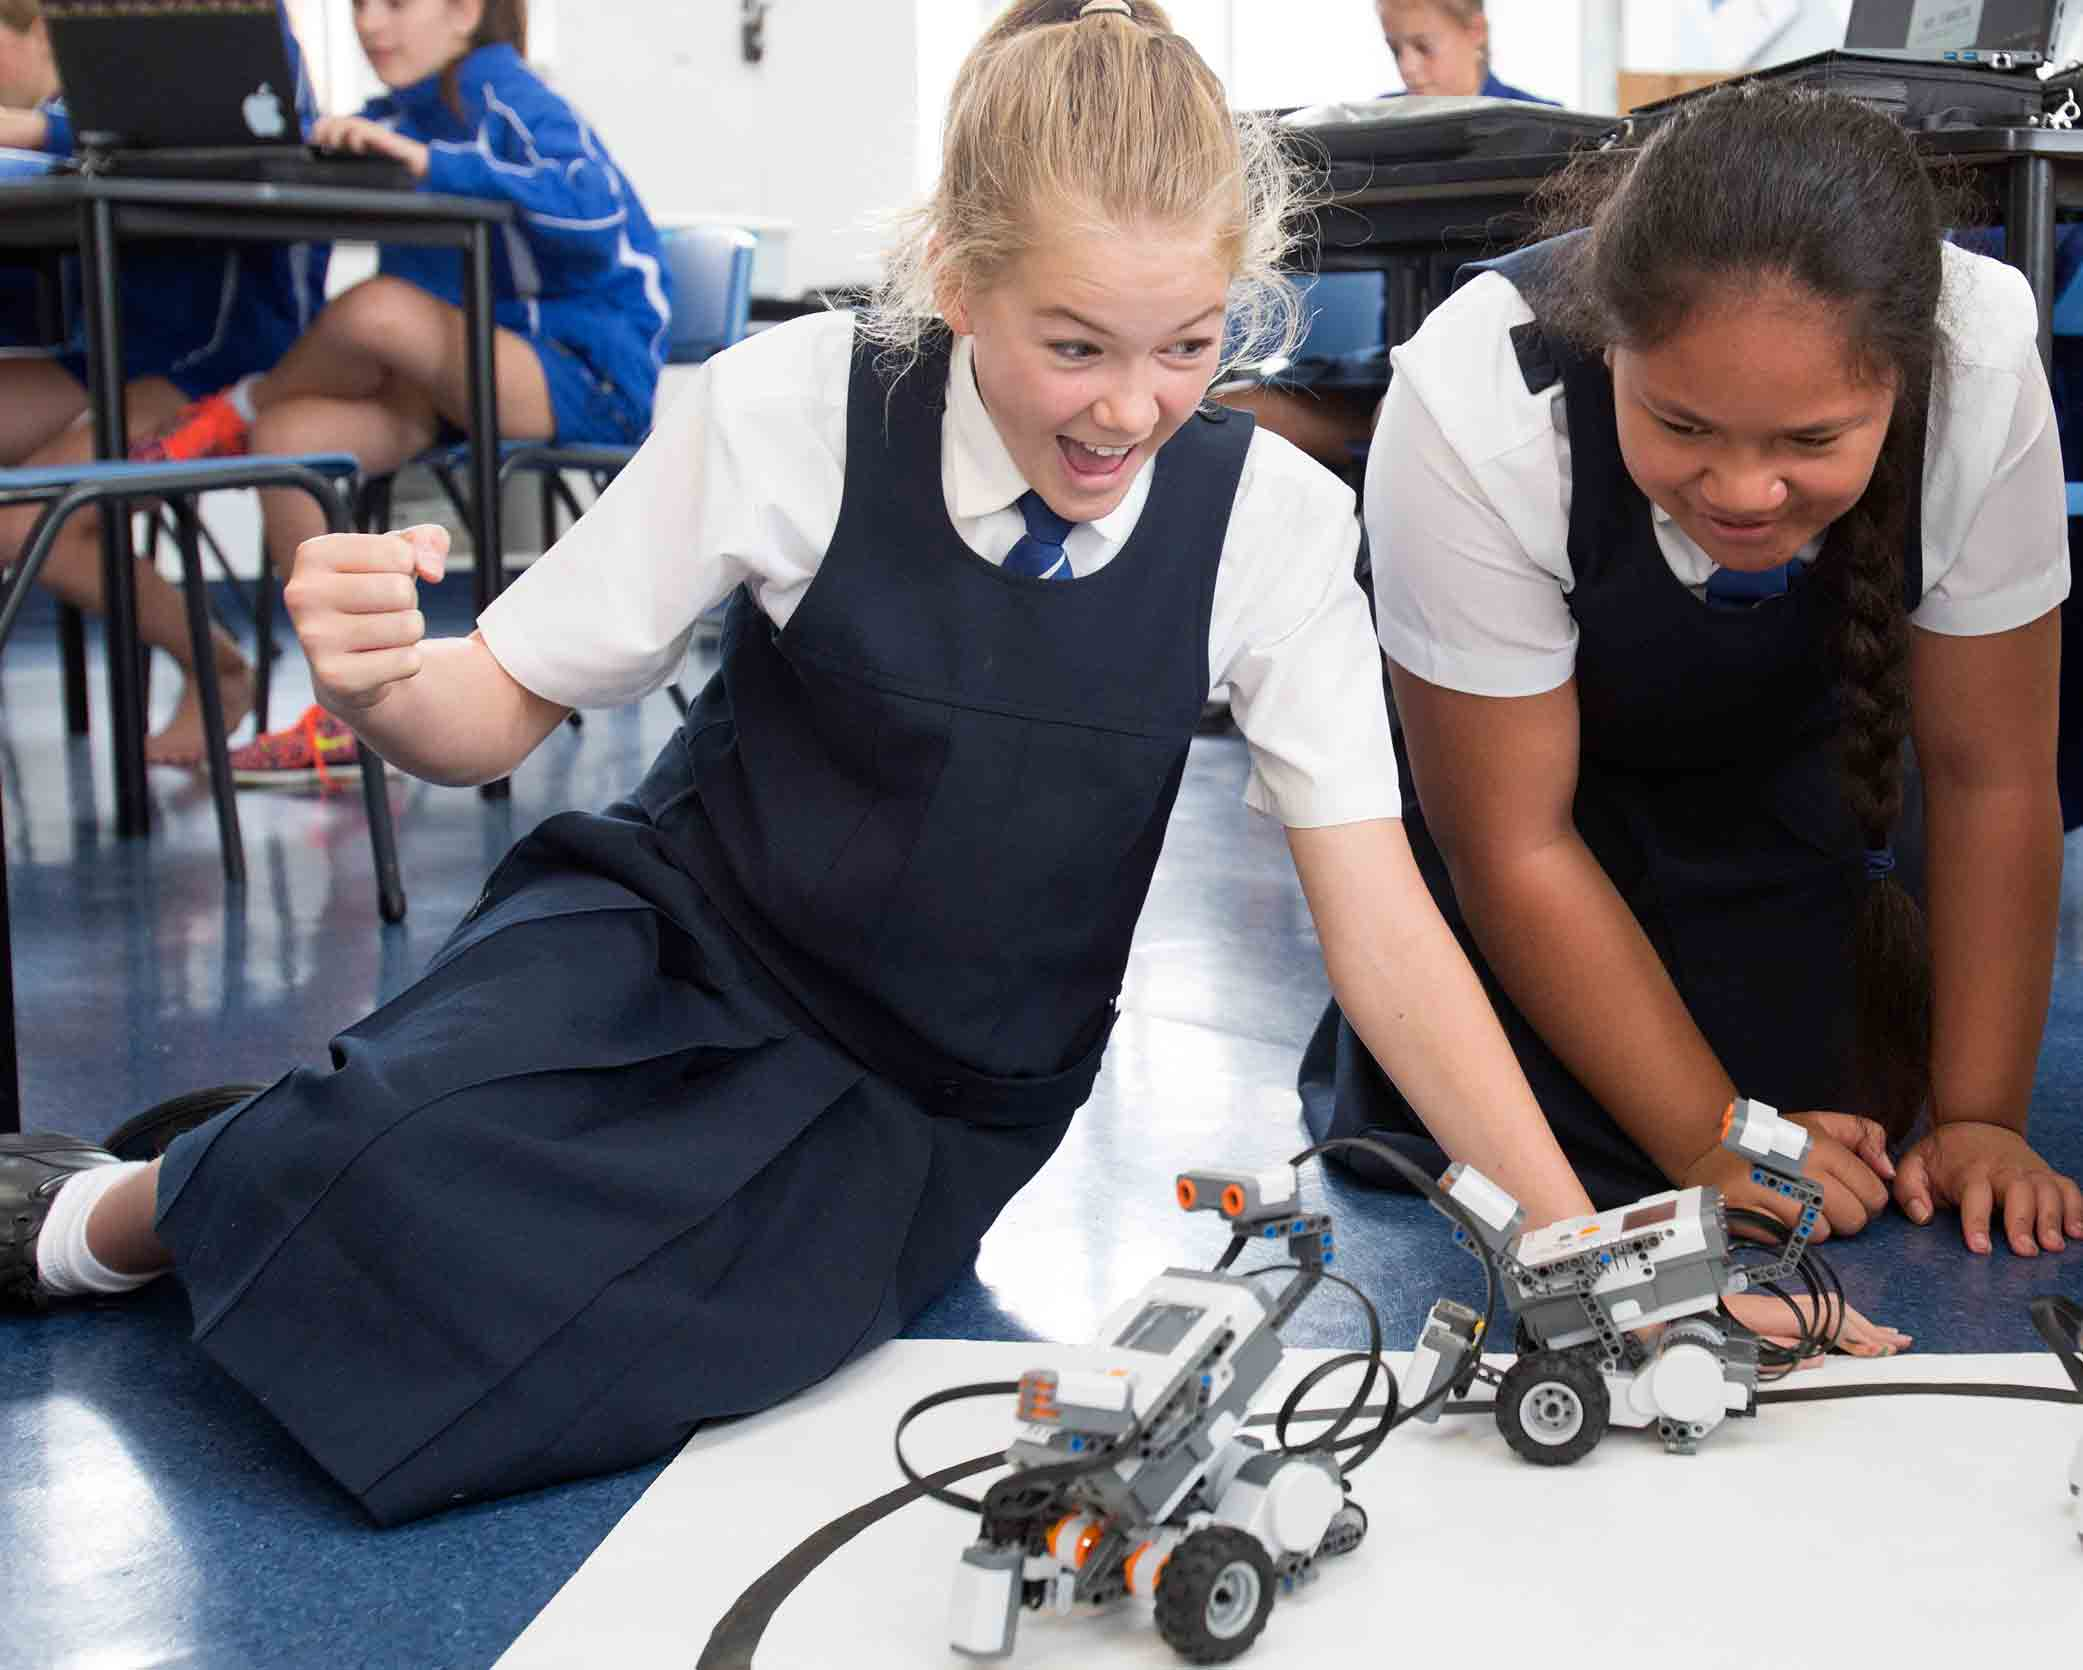 Saint-Kentigern-Girls'-School-Curriculum-Robotics.jpg